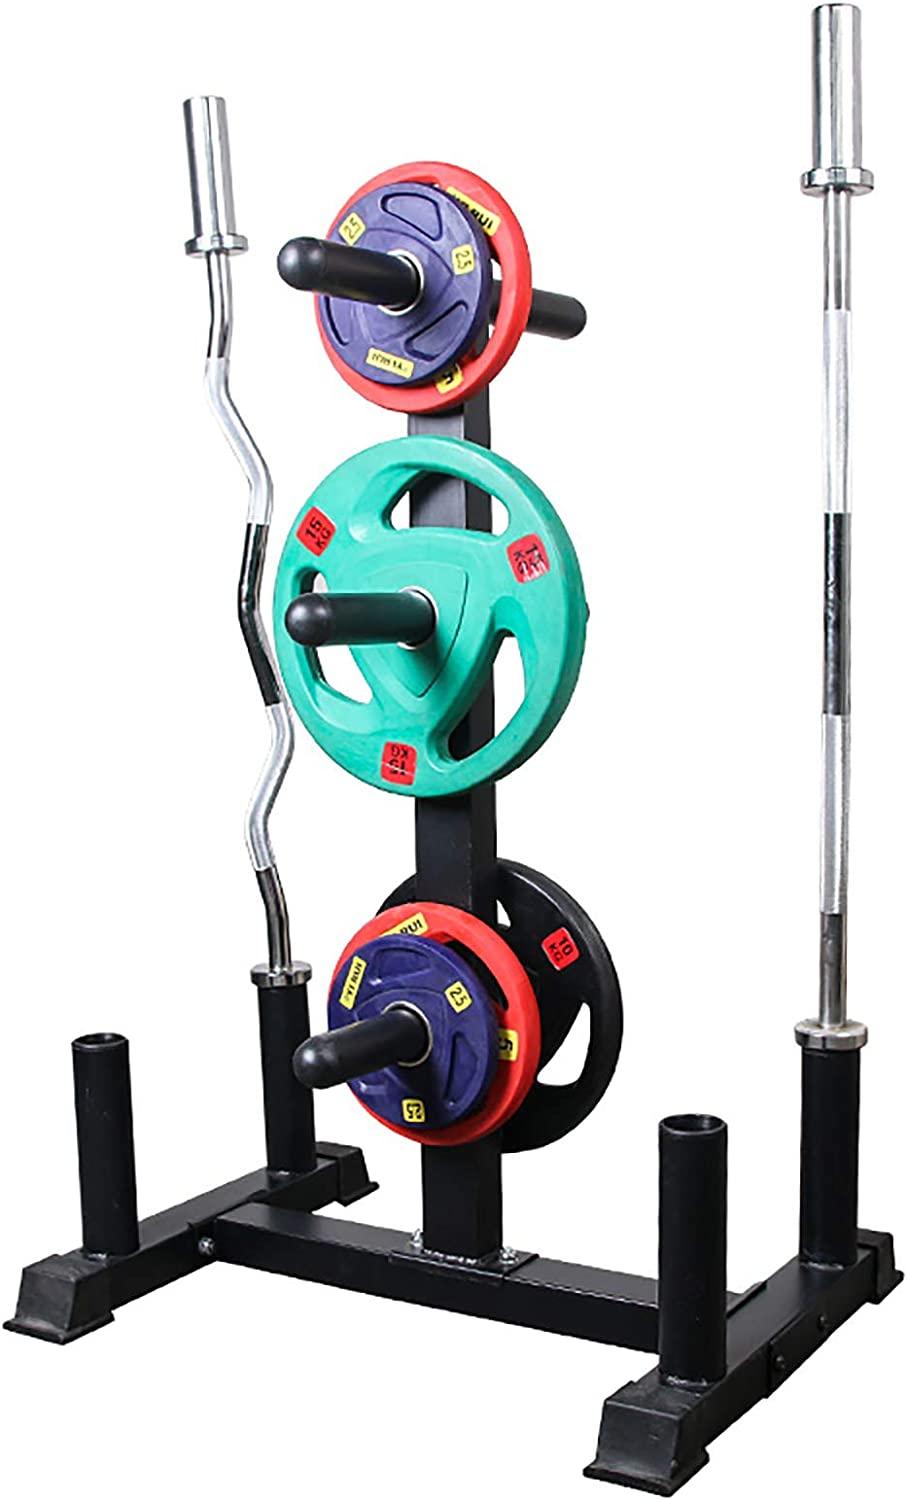 YF-1 3-Tier Home Dumbbell Rack Olympic Weight Tree with 4 Olympic Barbell Holder Stands for Gym Organization